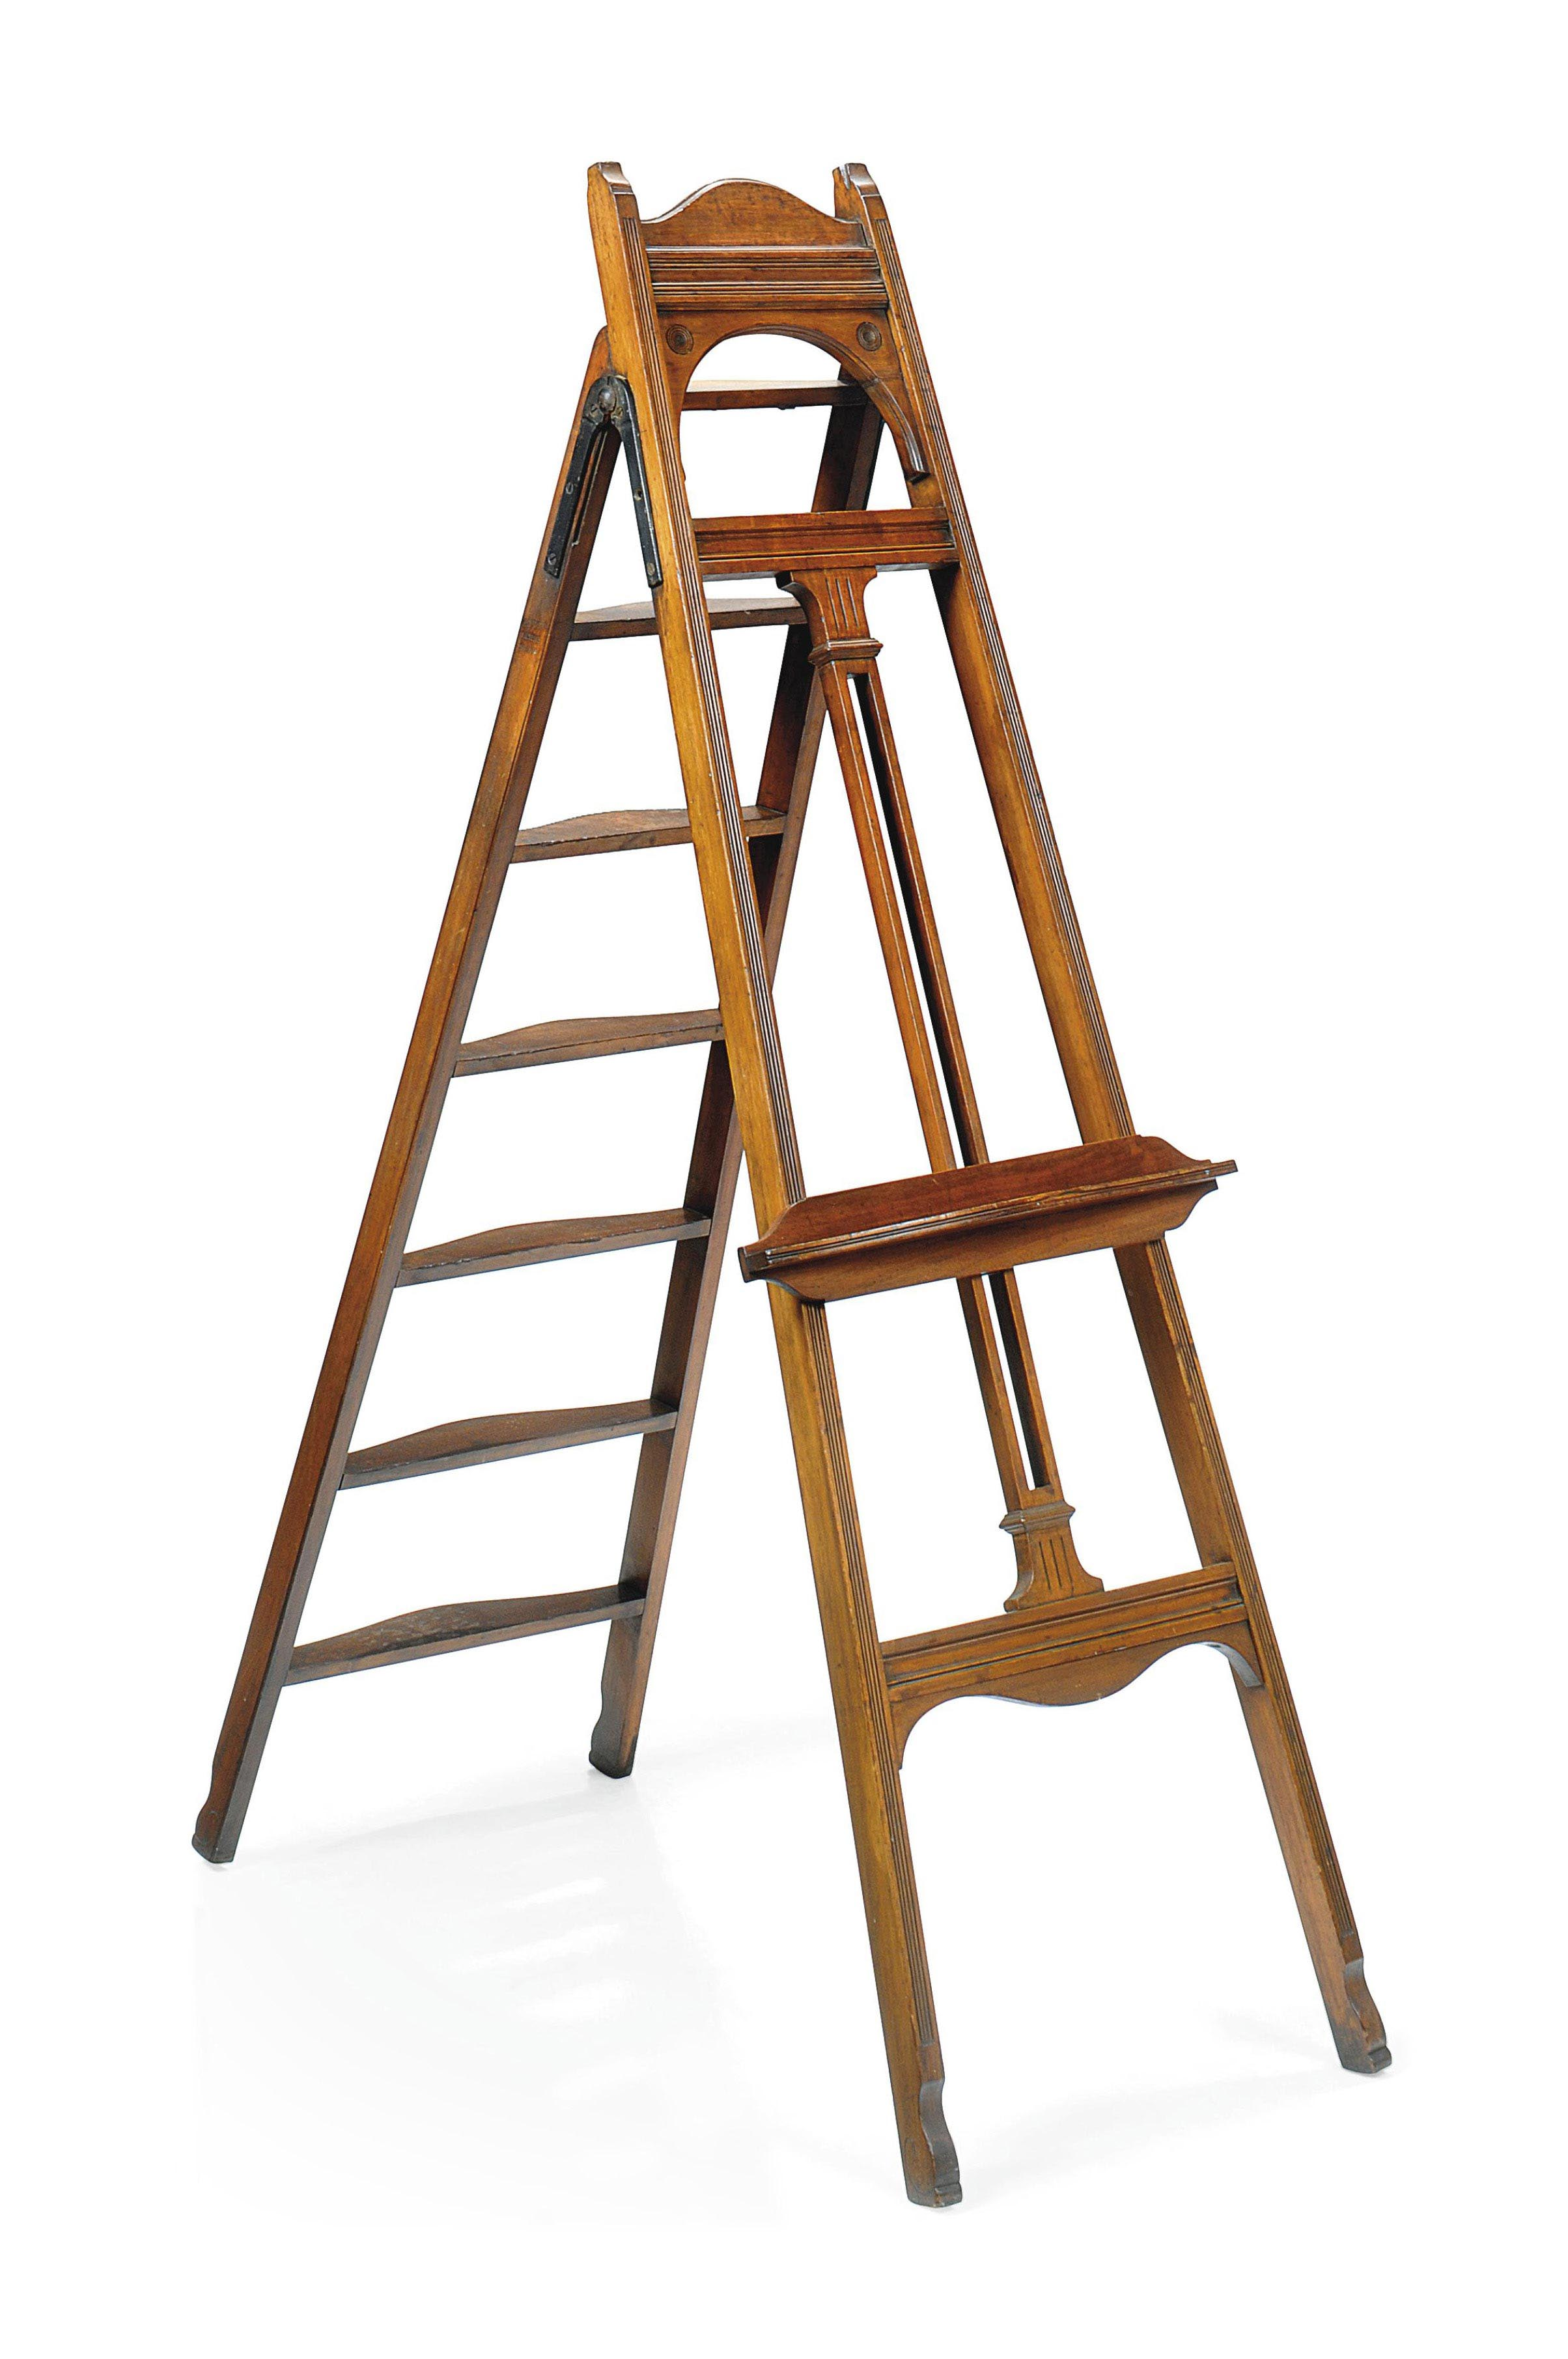 A LATE VICTORIAN MAHOGANY COMBINED EASEL AND LIBRARY STEP LADDER